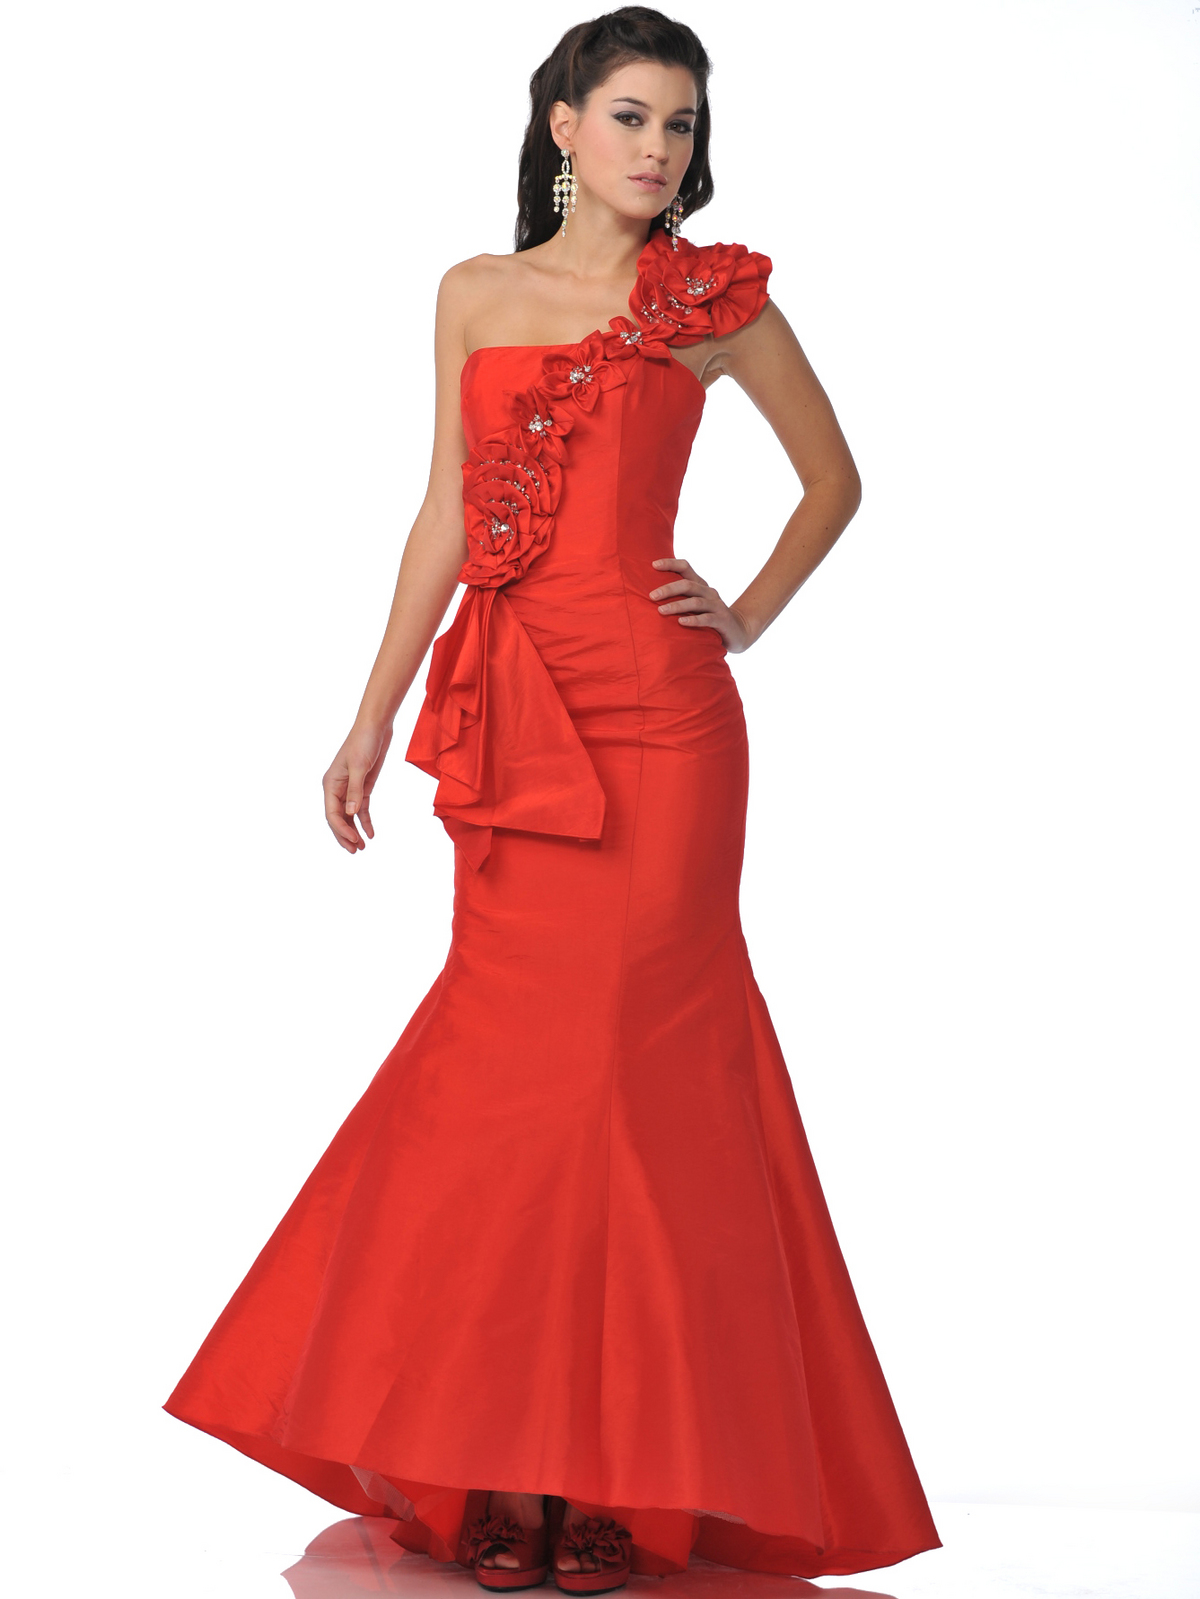 Red One Shoulder Mermaid Prom Dress | Sung Boutique L.A.